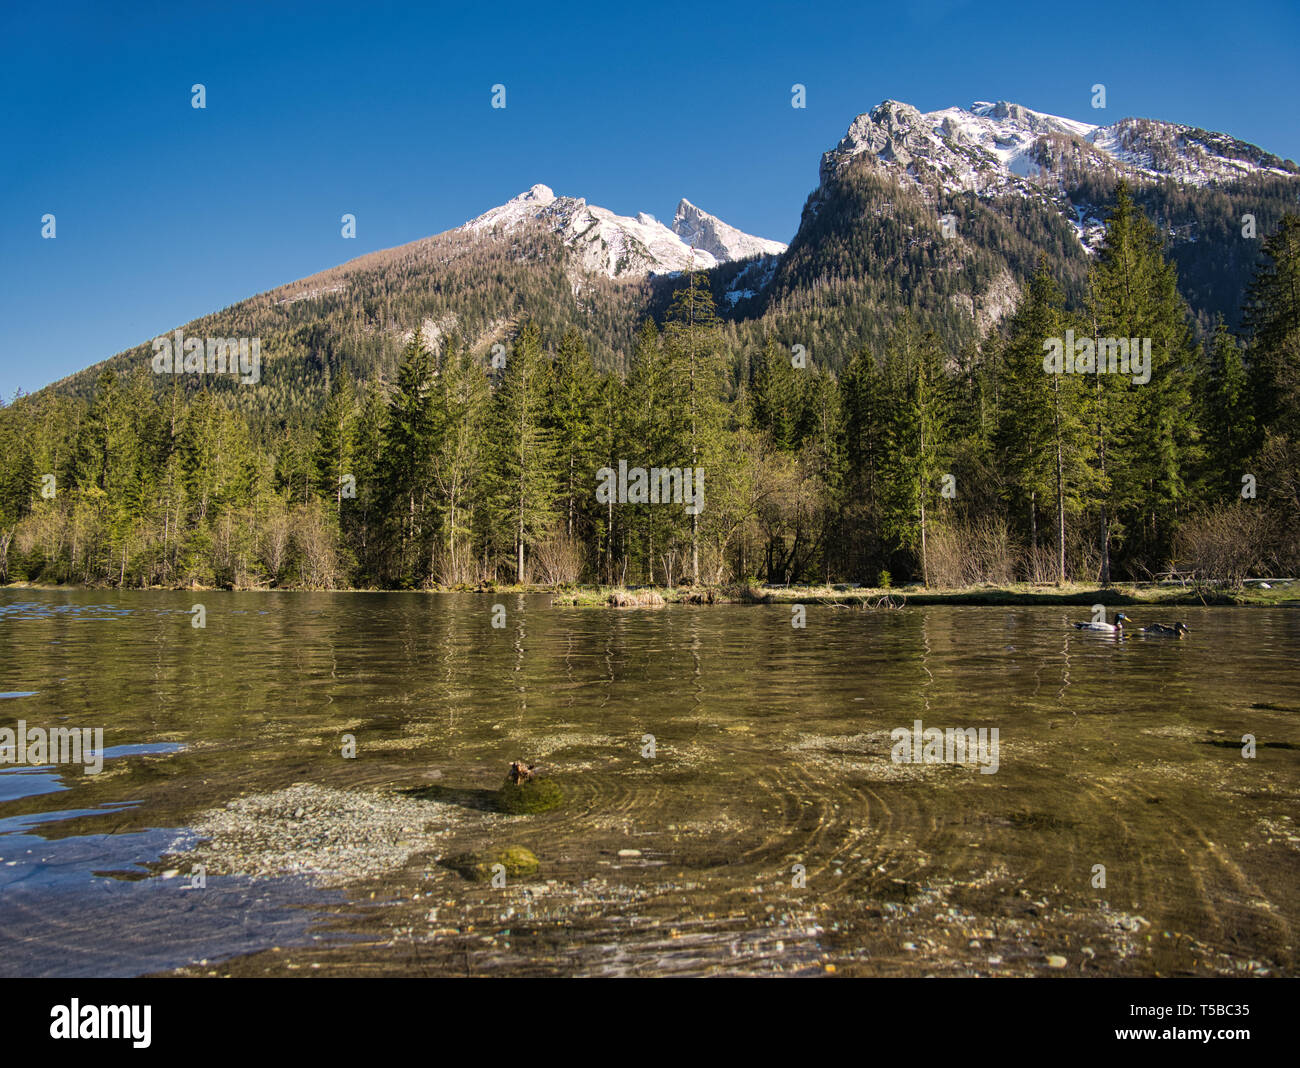 Two ducks on the crystal-clear Hintersee in Berchtesgaden with snow-covered mountains in the background - Stock Image